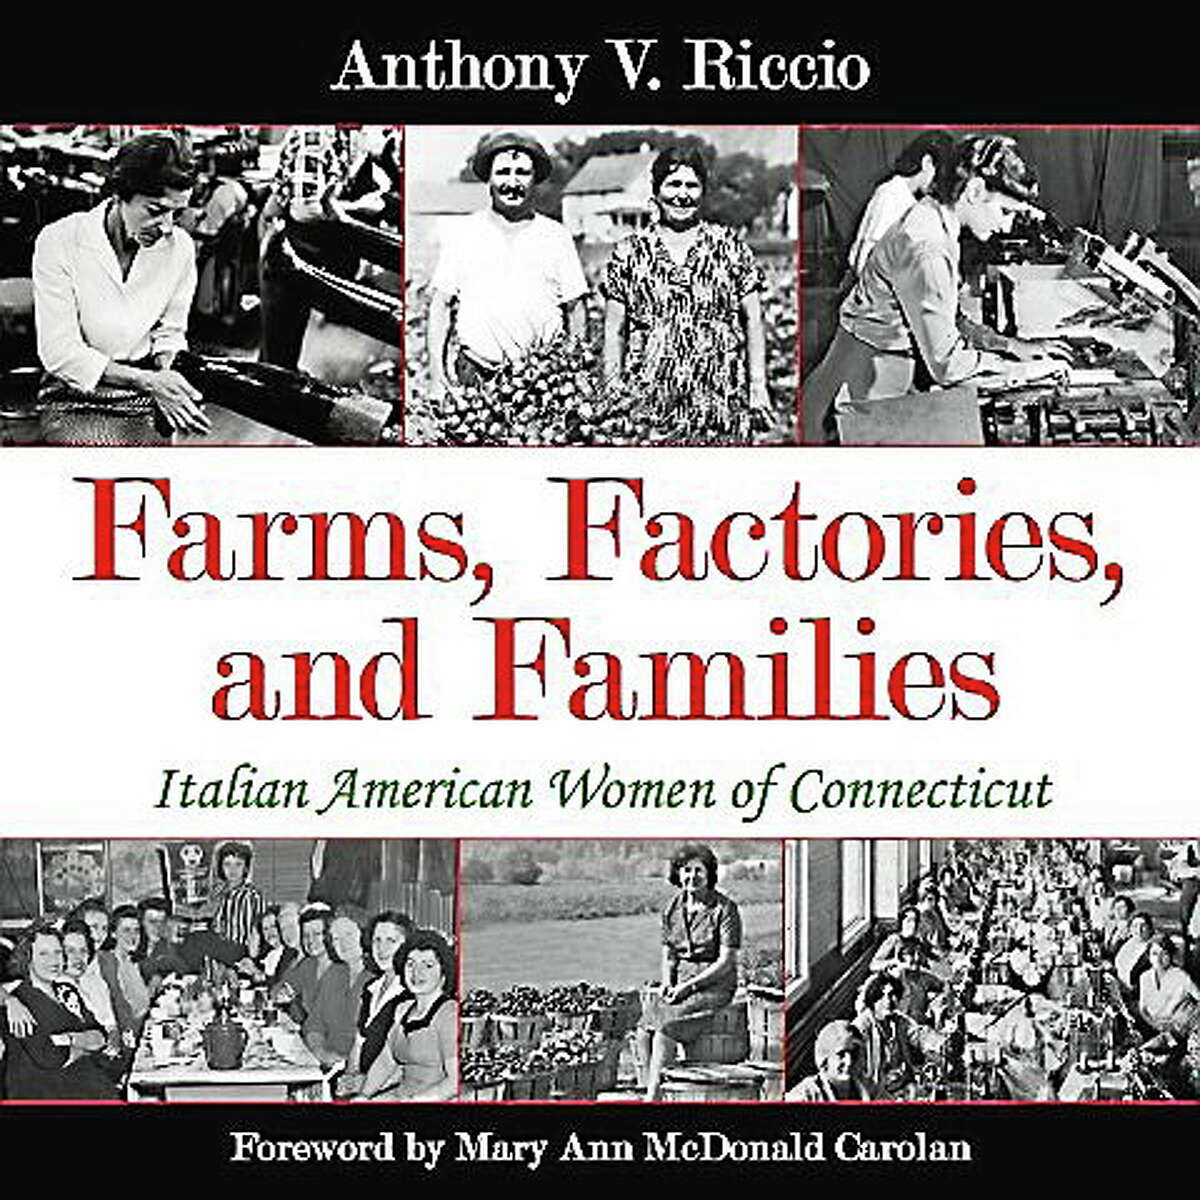 Anthony Riccio, author, photographer and oral historian, will speak about his book, ìFarms, Factories and Families: Italian American Women of Connecticut,î Sept. 20 at Middletown's Russell Library.